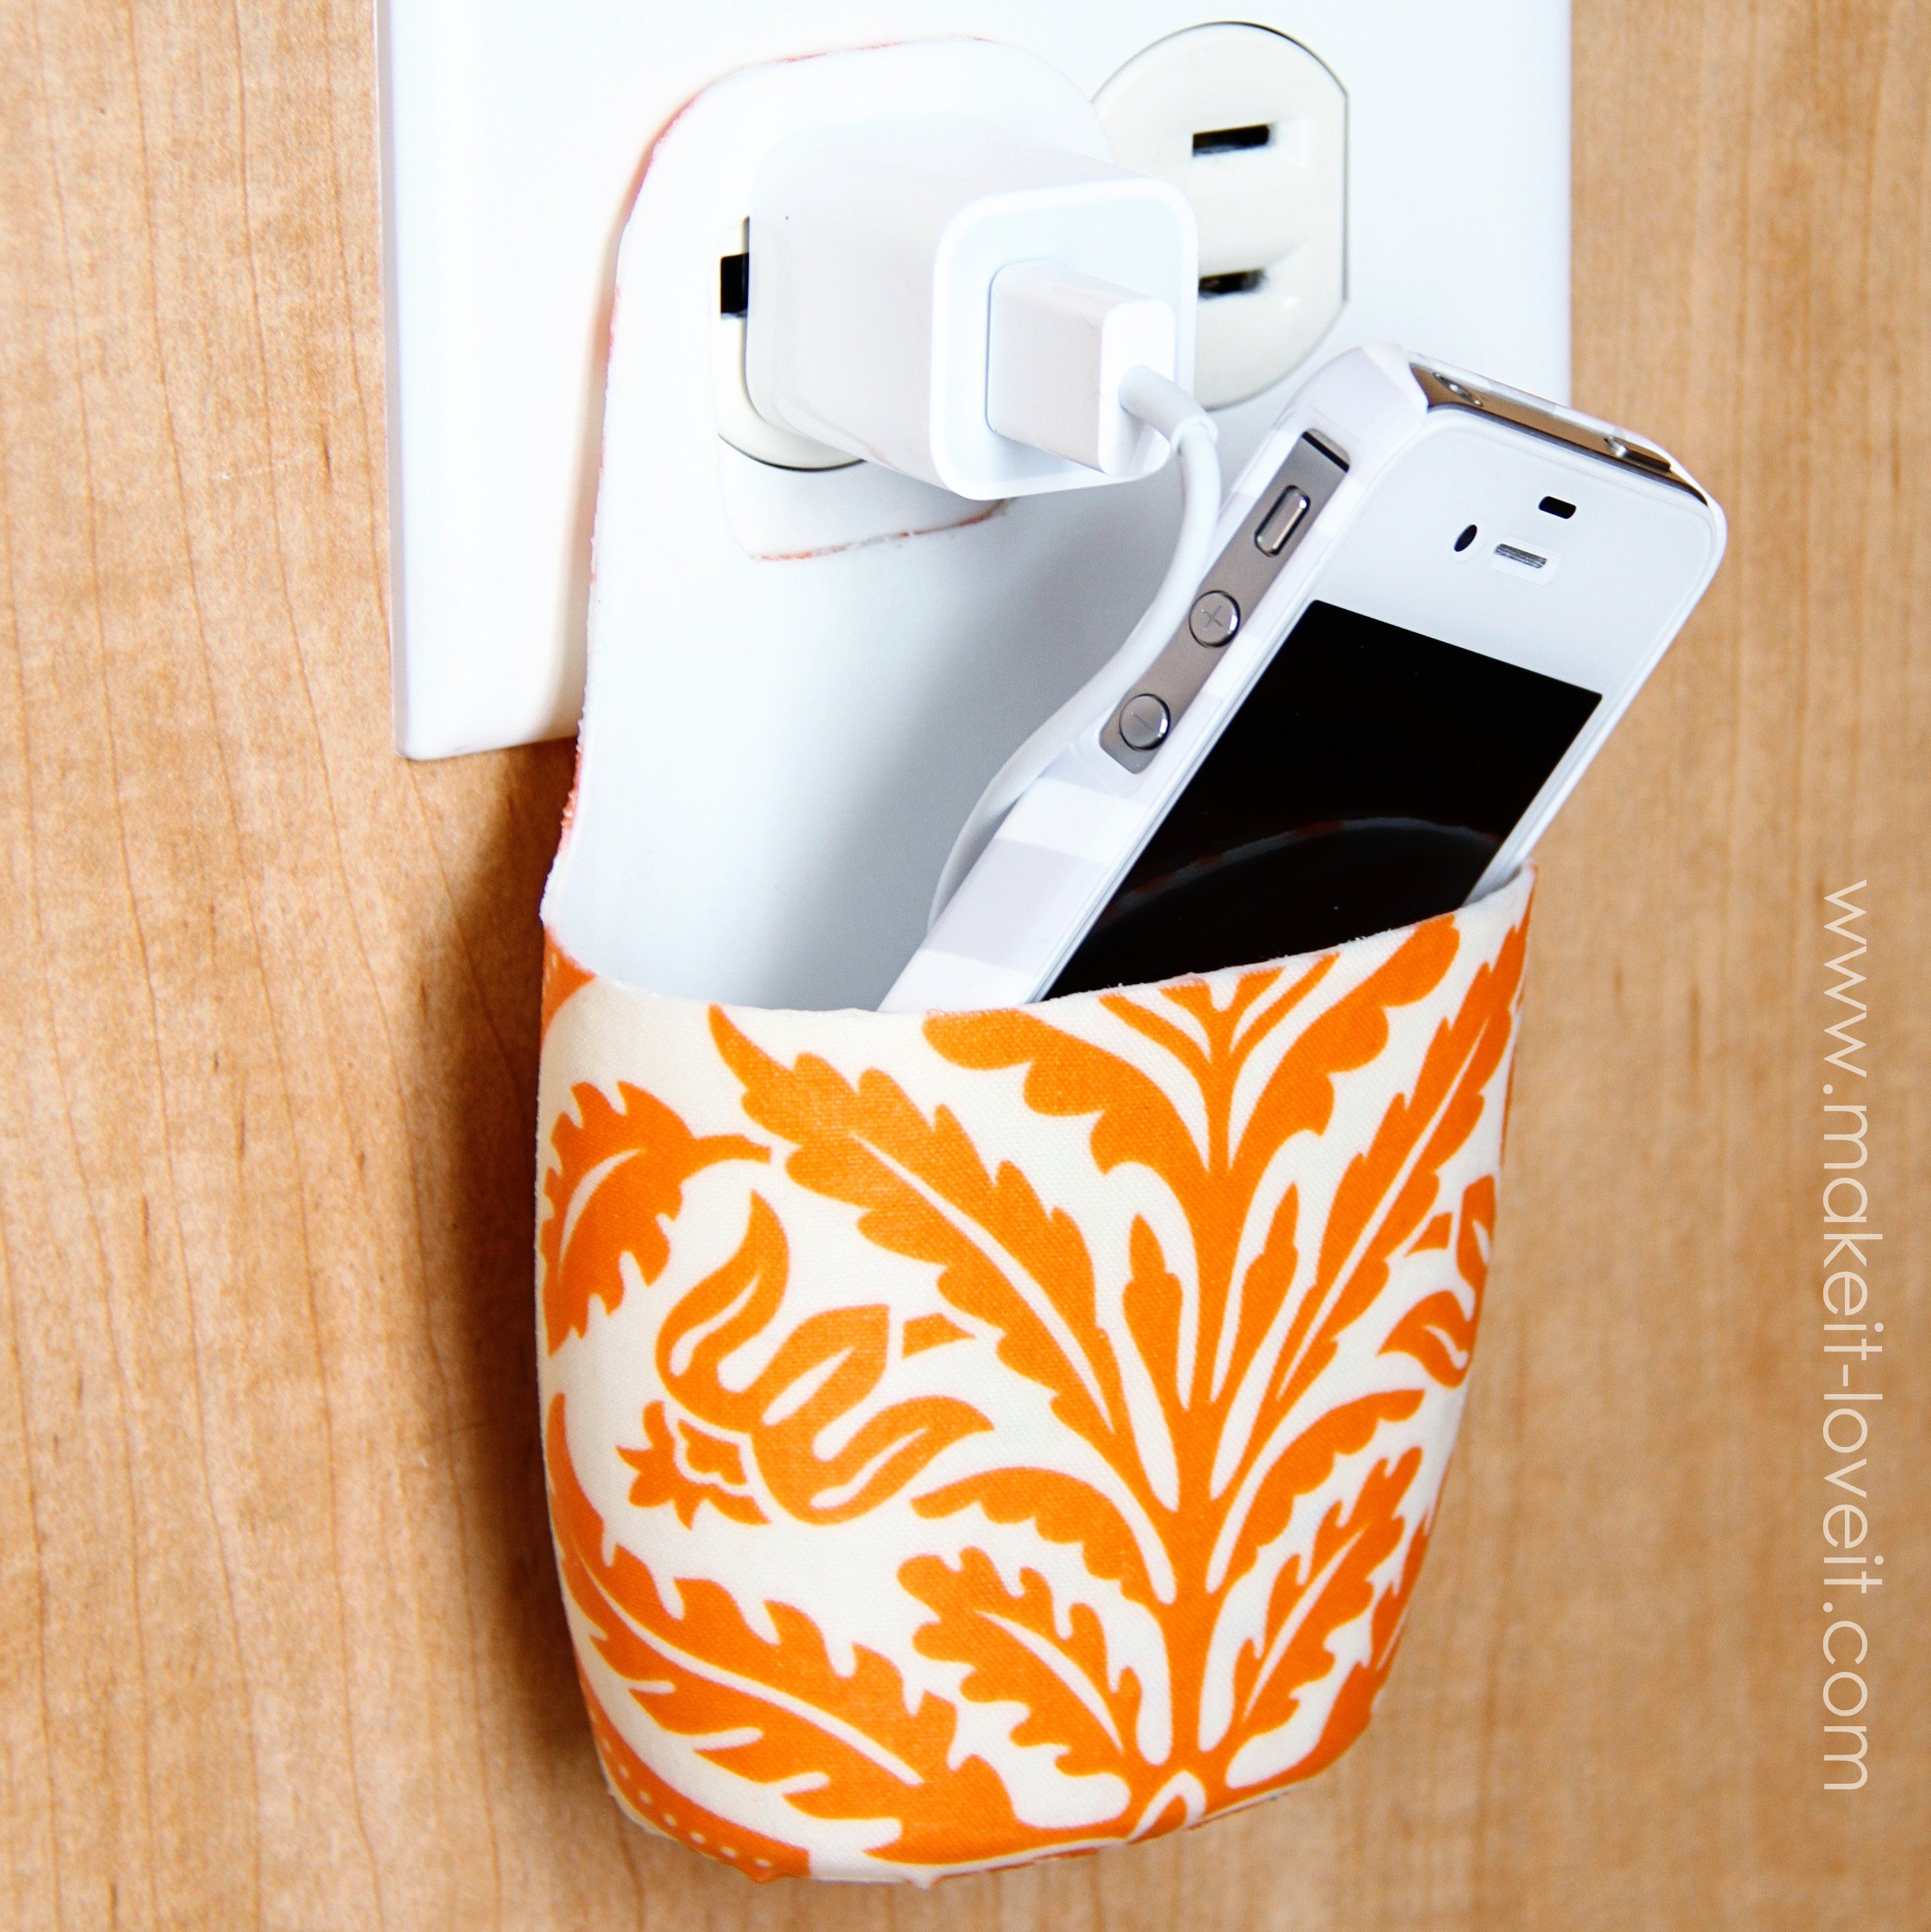 An easy tutorial to make a Holder for Charging Cell Phone made from a lotion bottle! Brilliant!